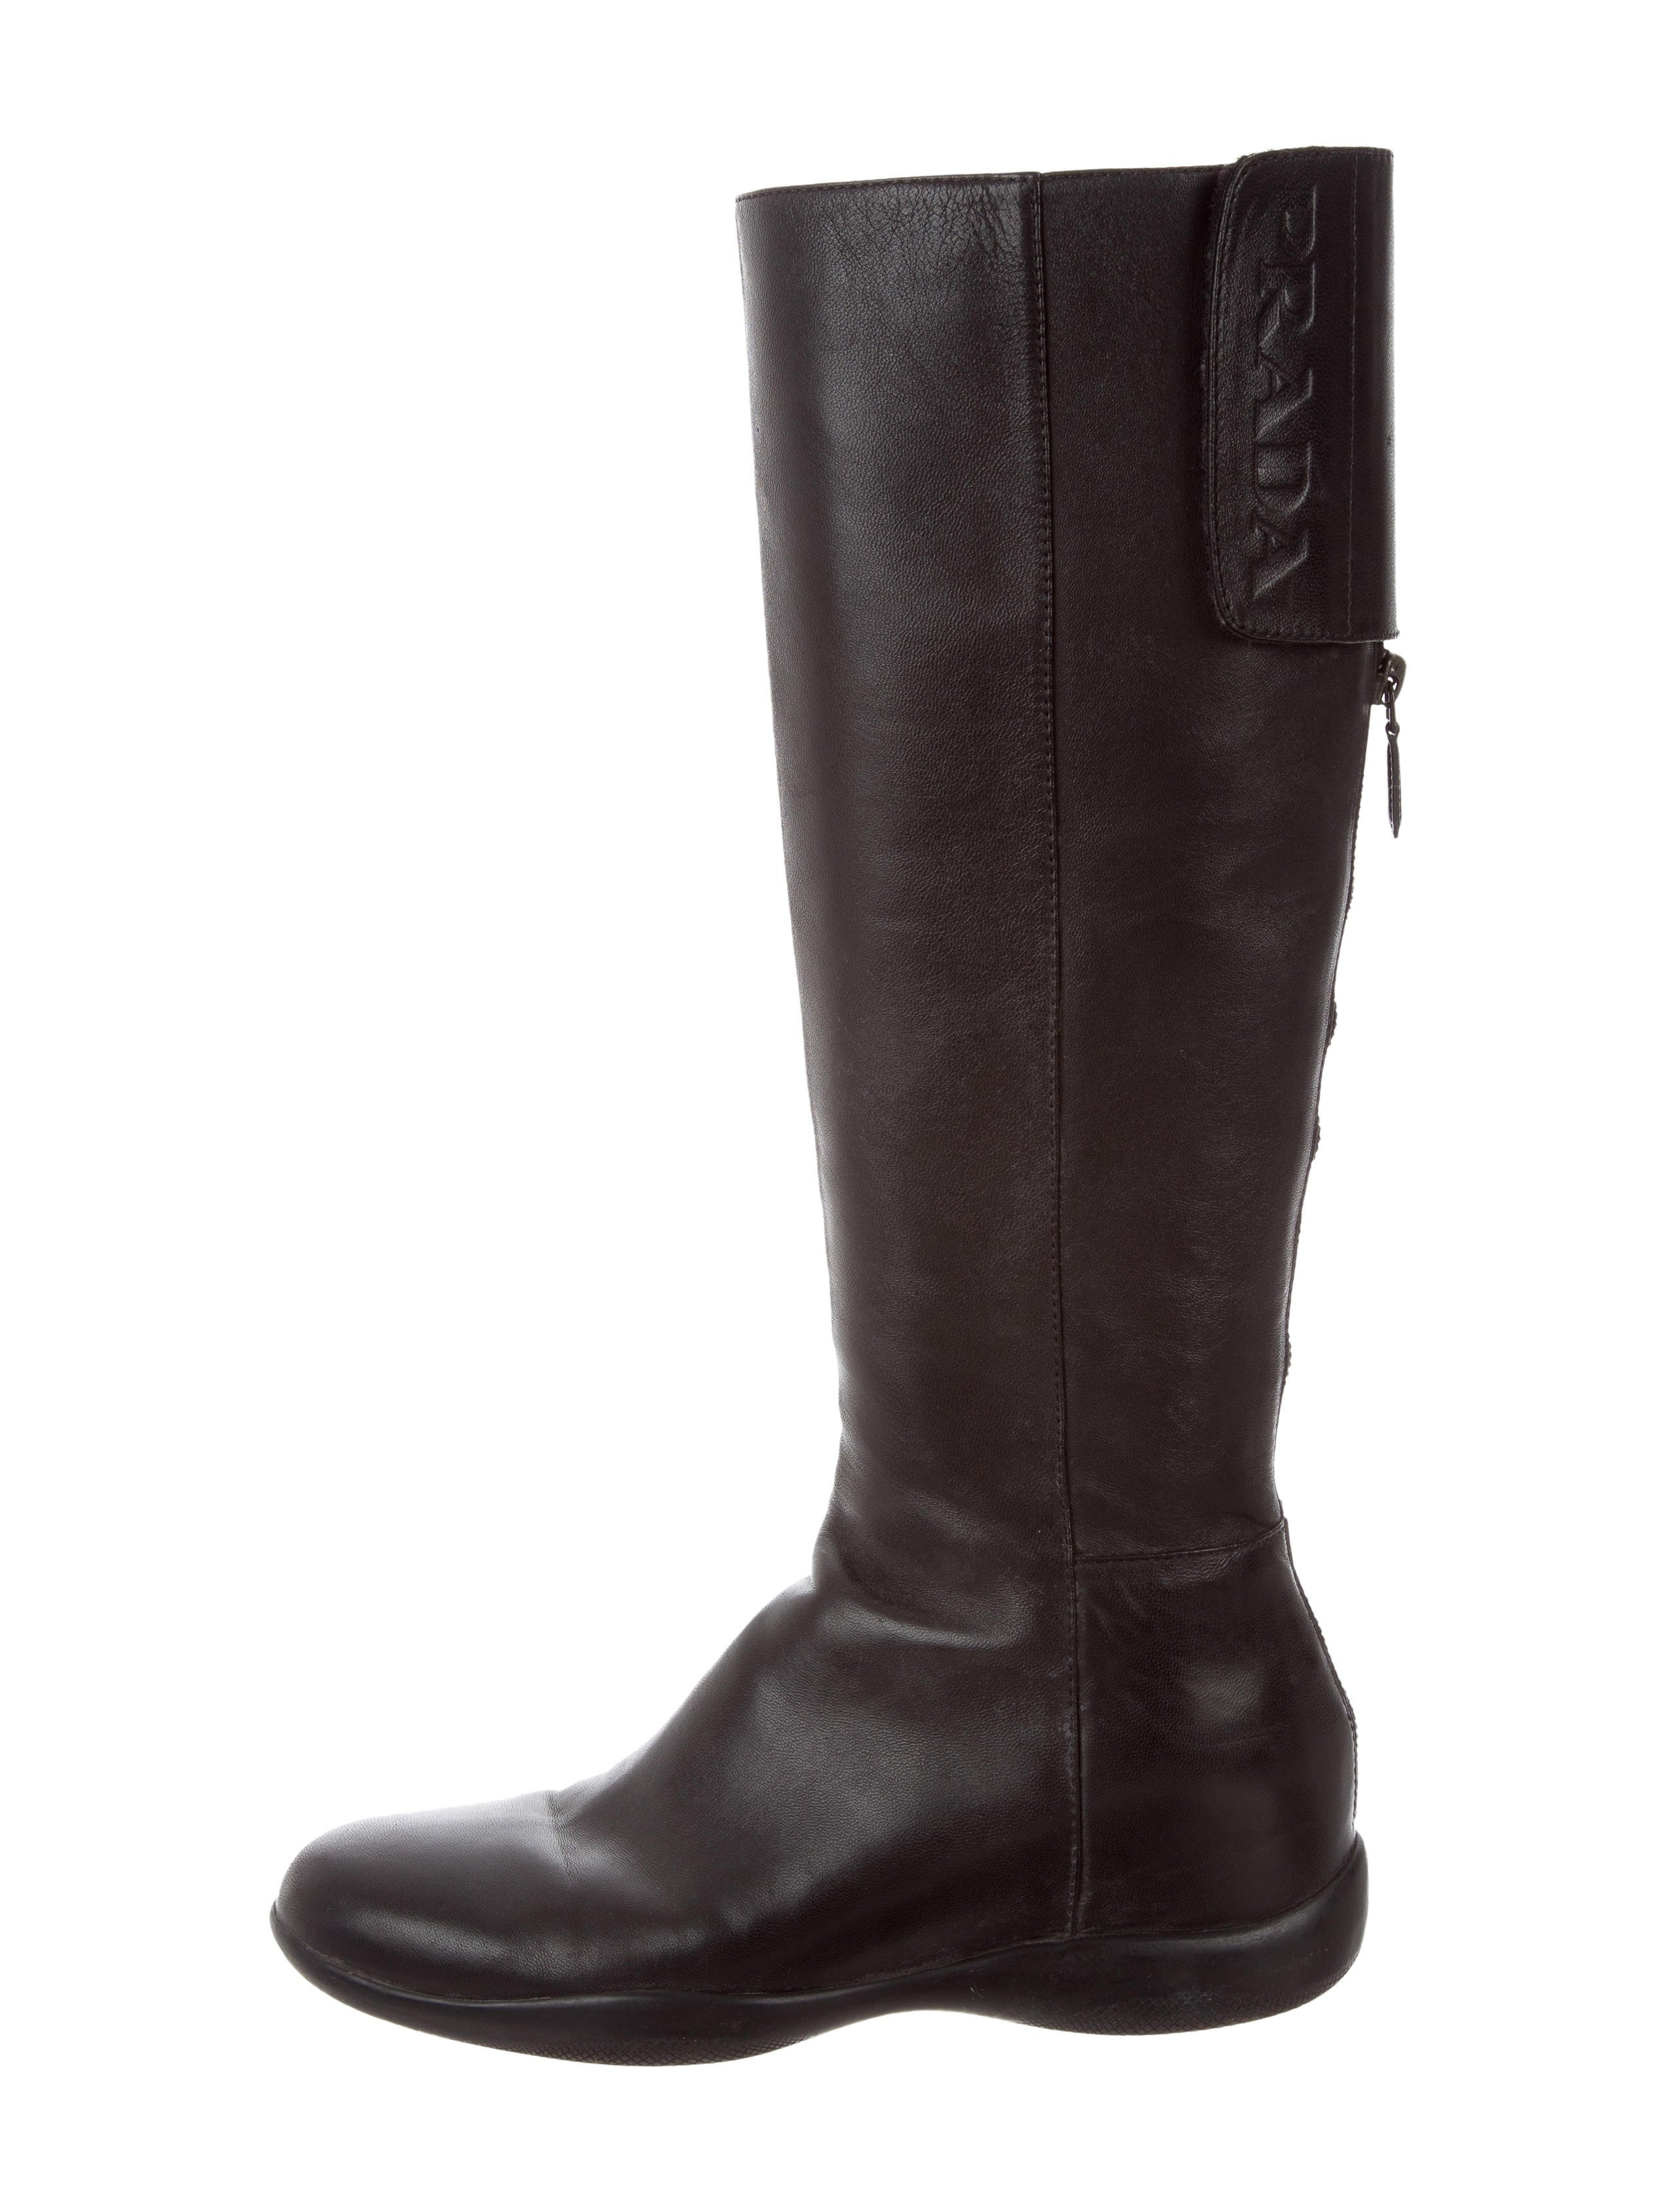 Prada Sport Leather Knee Boots clearance finishline mH8h34x